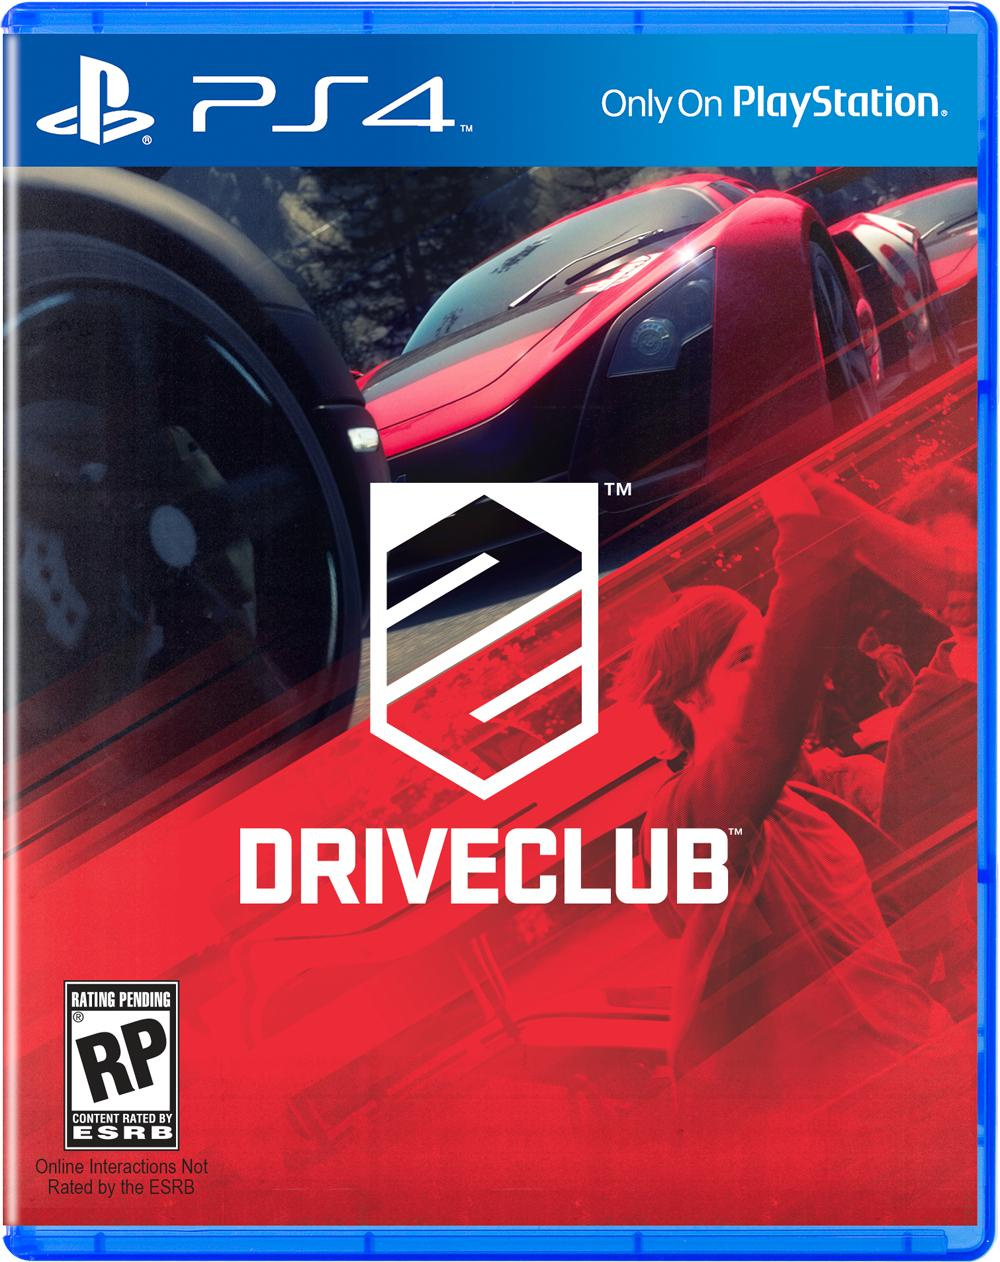 Obaly XCOM: Enemy Within a DriveClub 86786